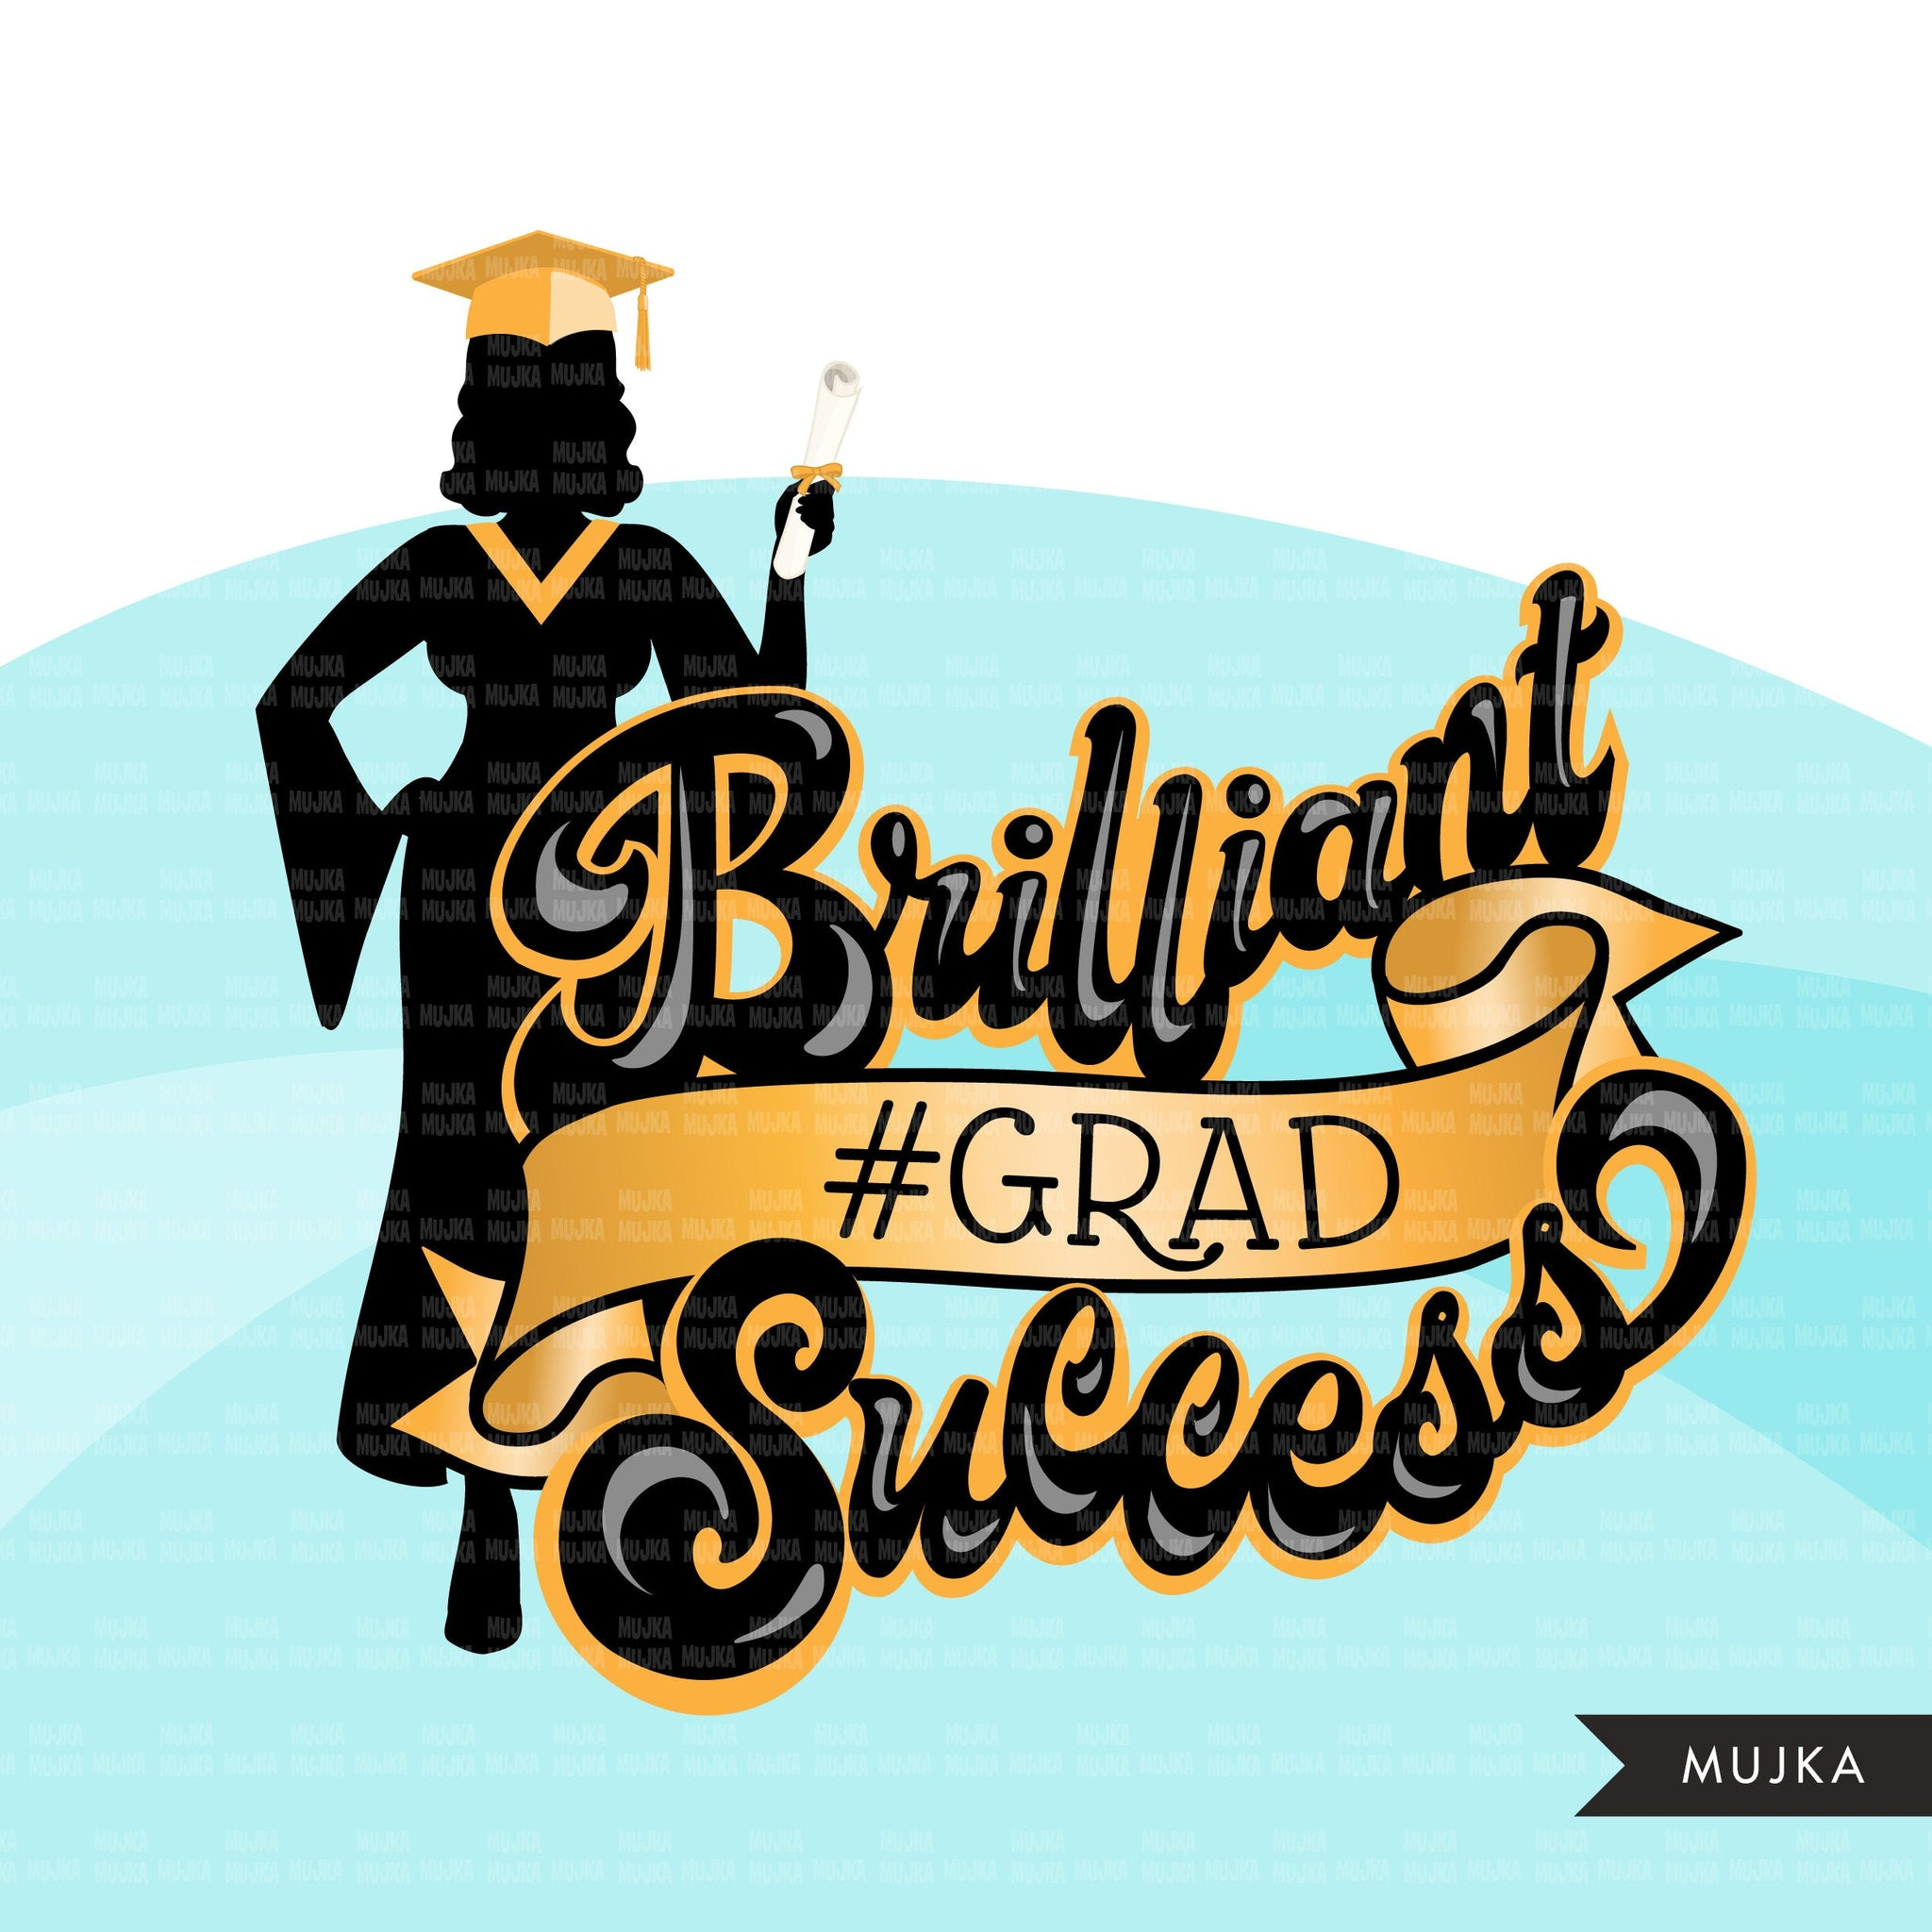 Grad Clipart, Graduation 2021 png, Brilliant grad sublimation designs digital download, class of 2021 png, graduate women school clip art graphics